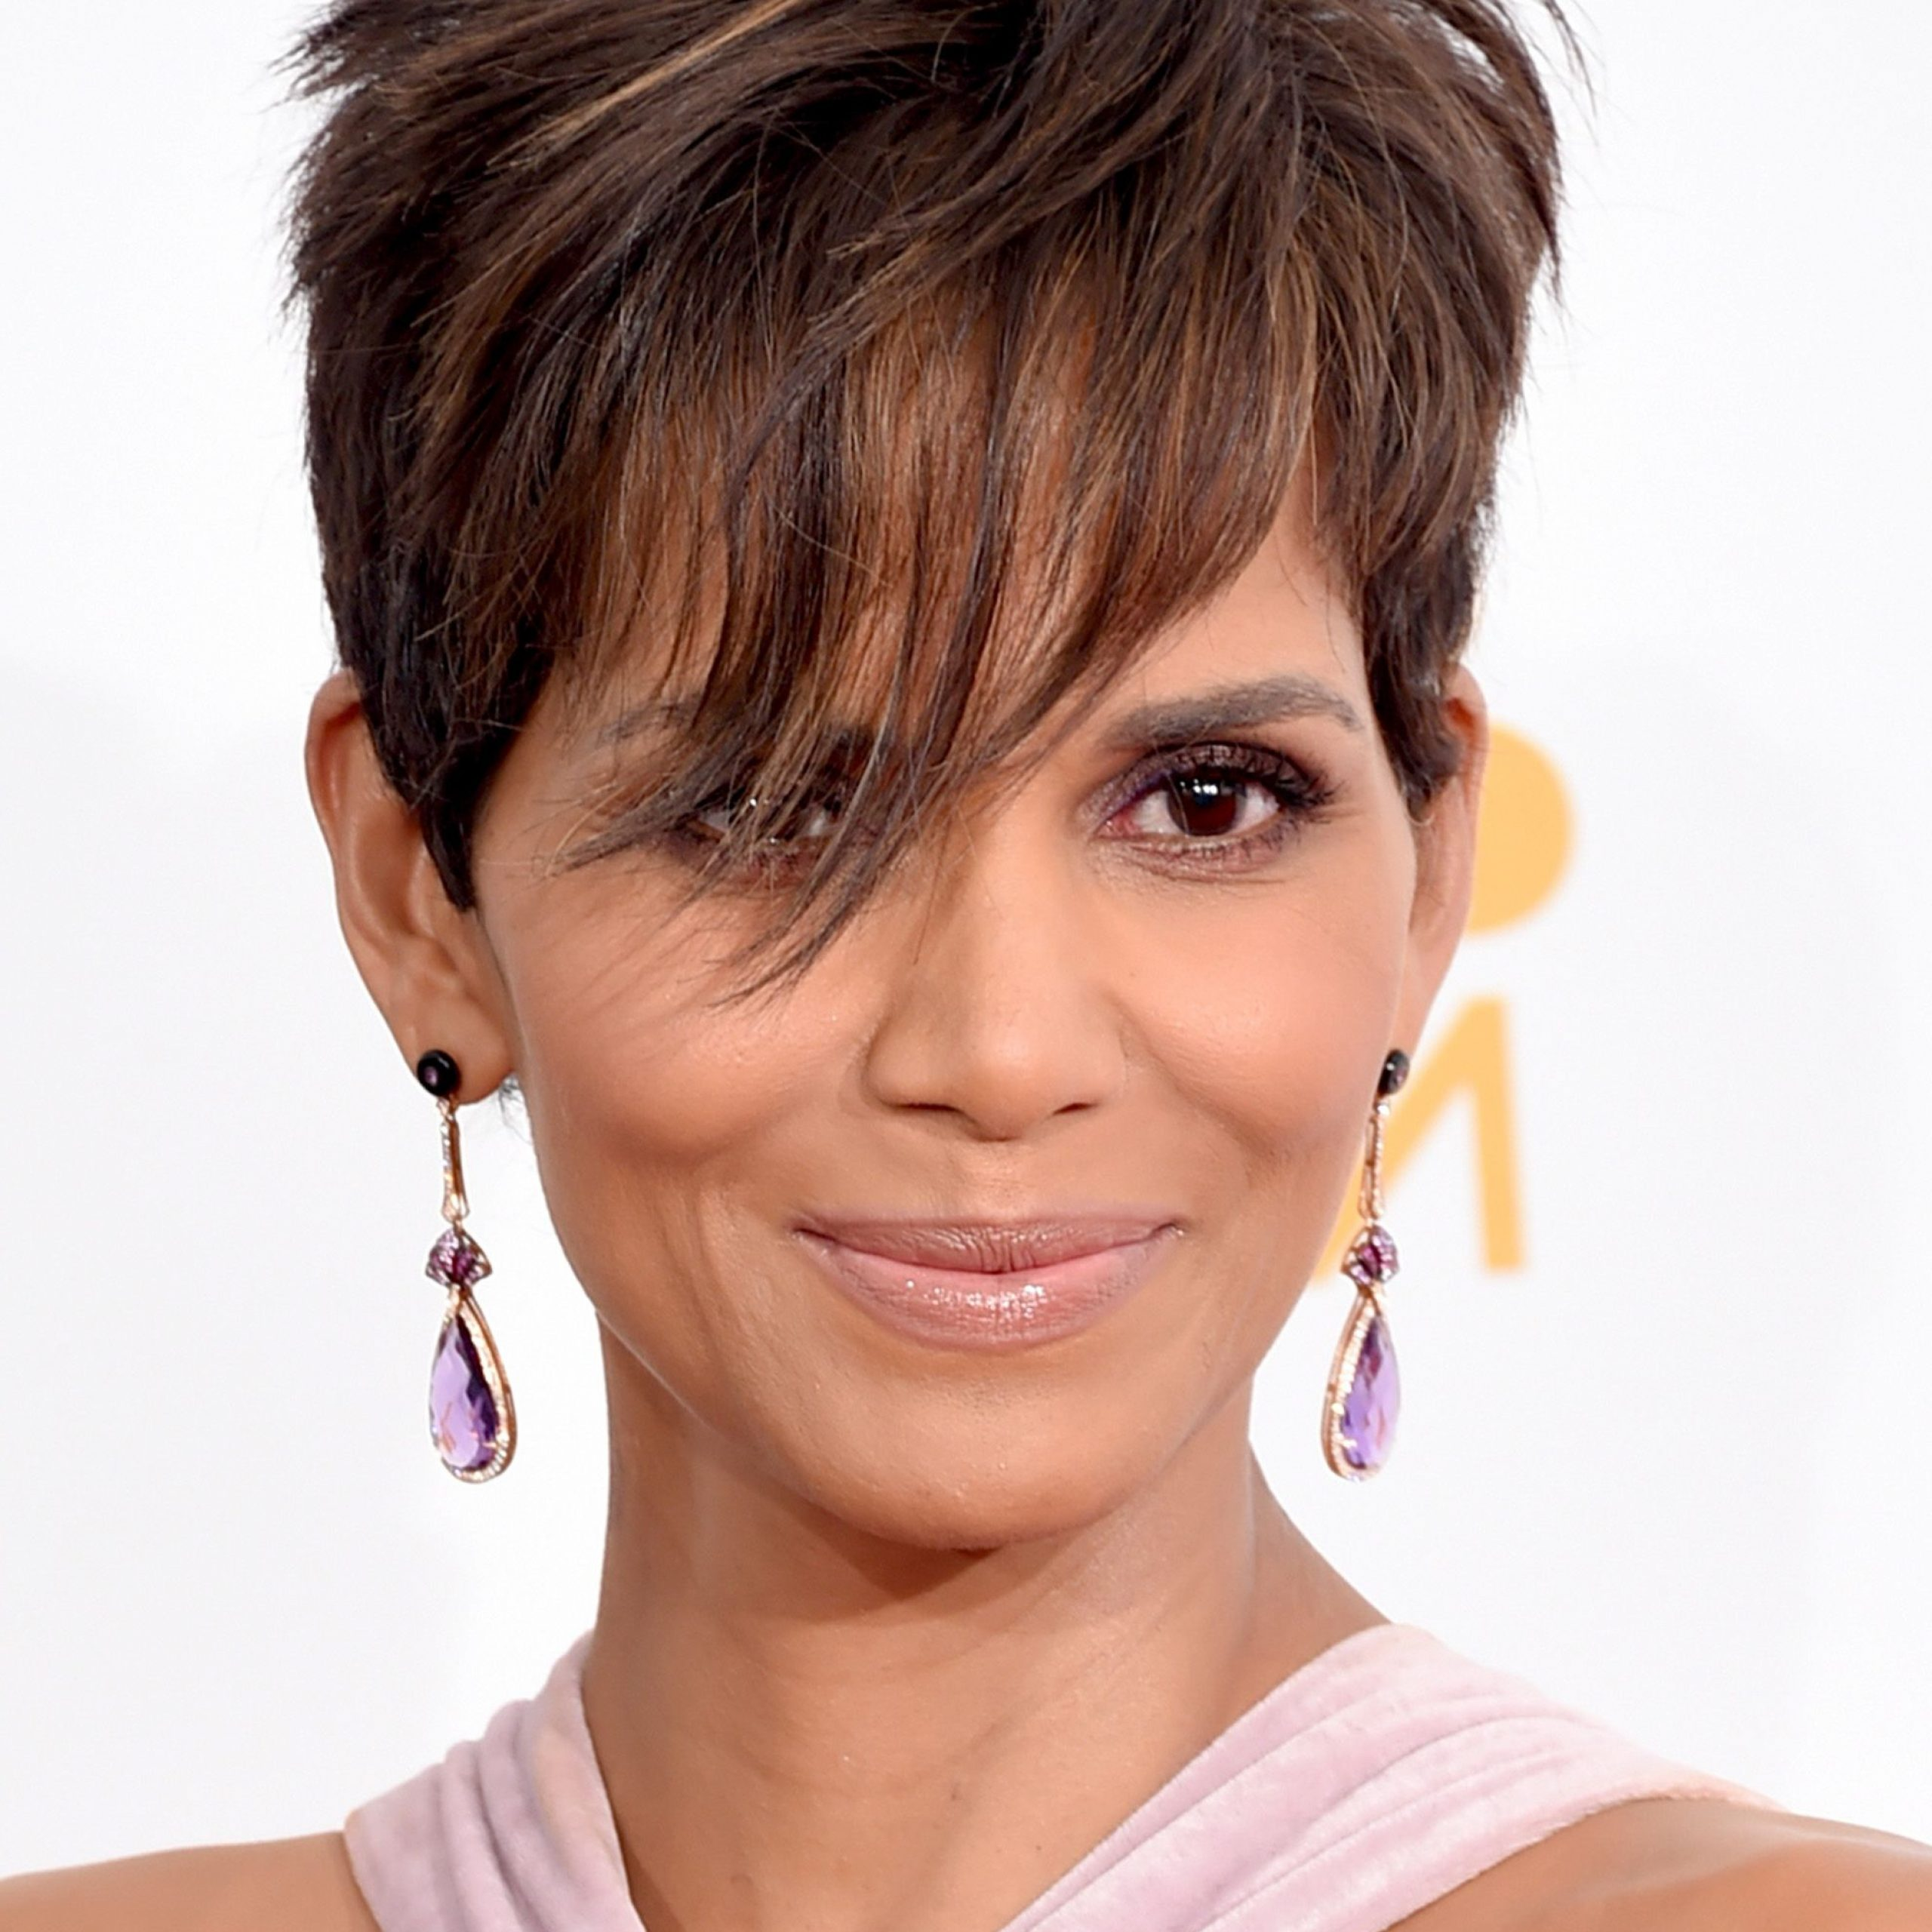 40 Best Short Pixie Cut Hairstyles 2019 – Cute Pixie Inside Long Pixie Haircuts With Angled Layers (View 6 of 20)